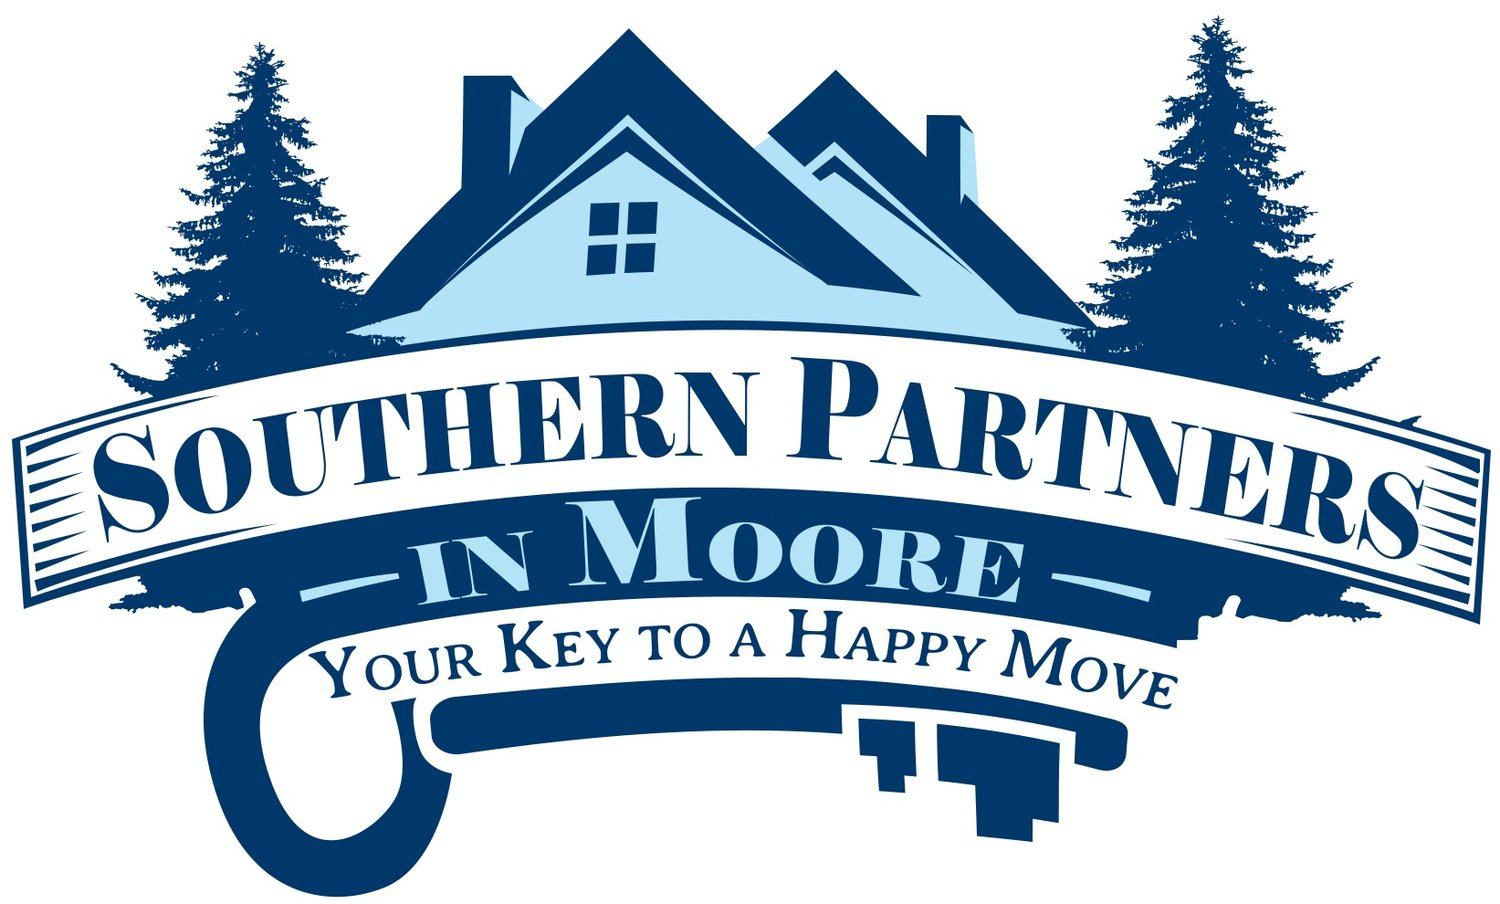 Southern Partners in Moore